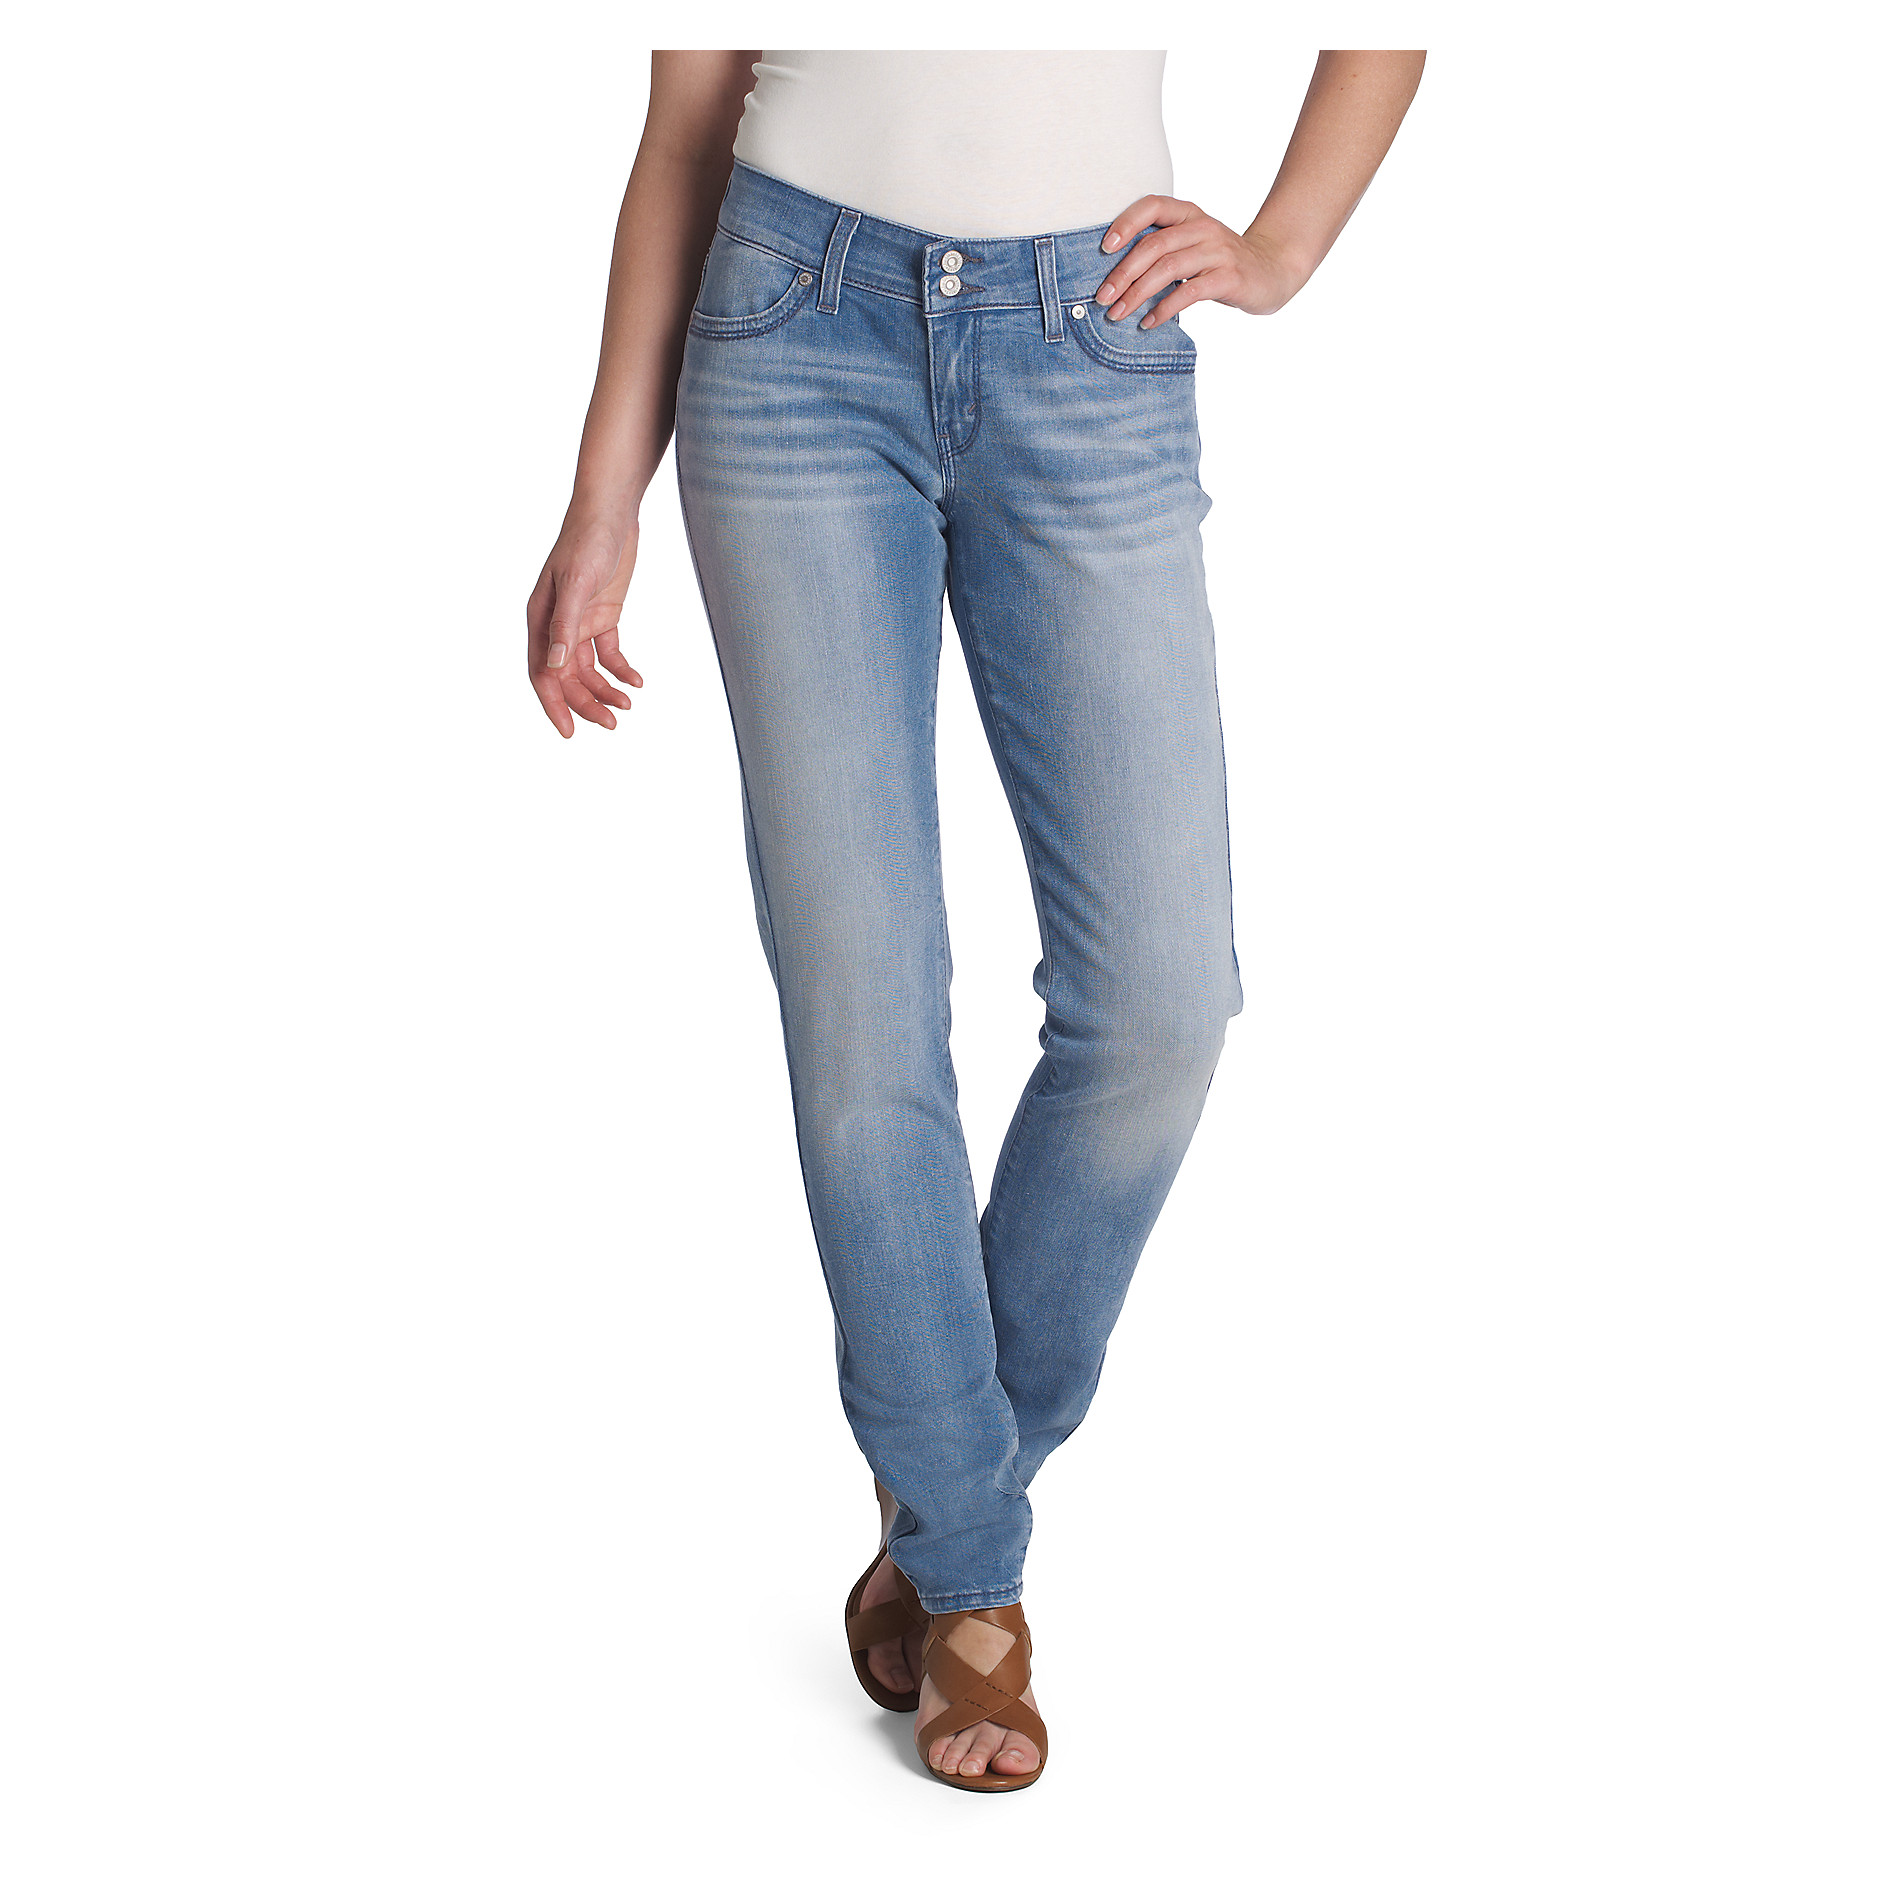 Levi's Women's Curvy Fit Skinny High Impact Jeans at Sears.com